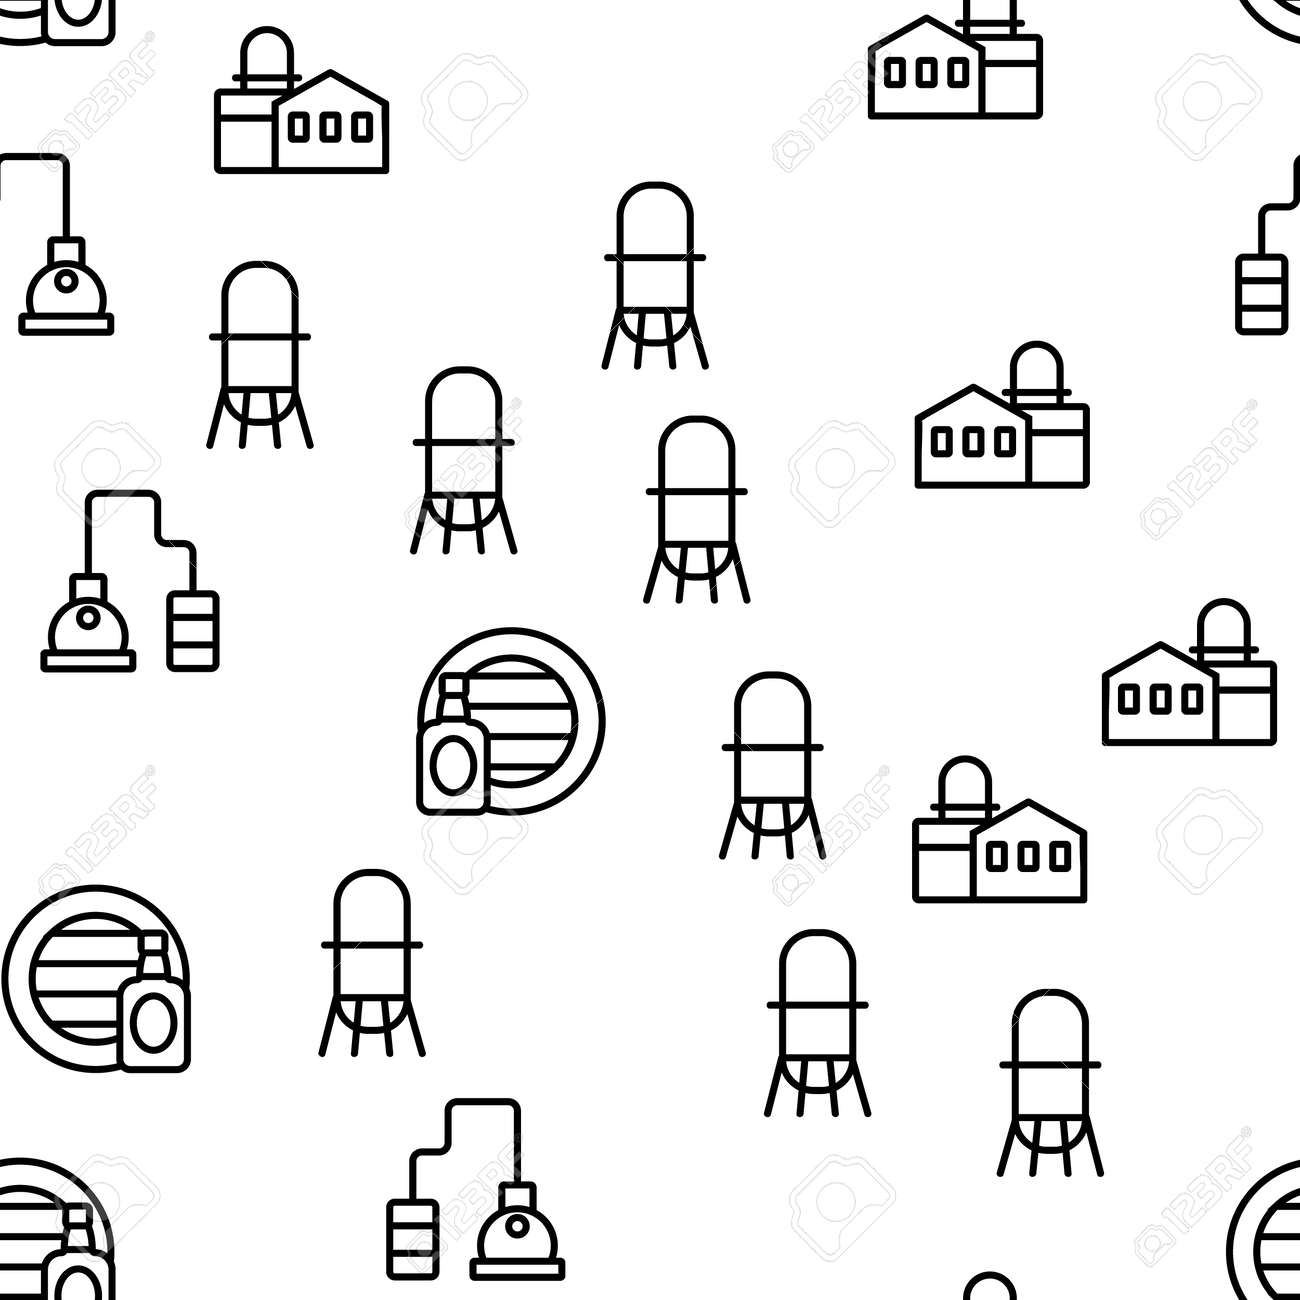 Whisky Alcoholic Drink Vector Seamless Pattern Thin Line Illustration - 151904452